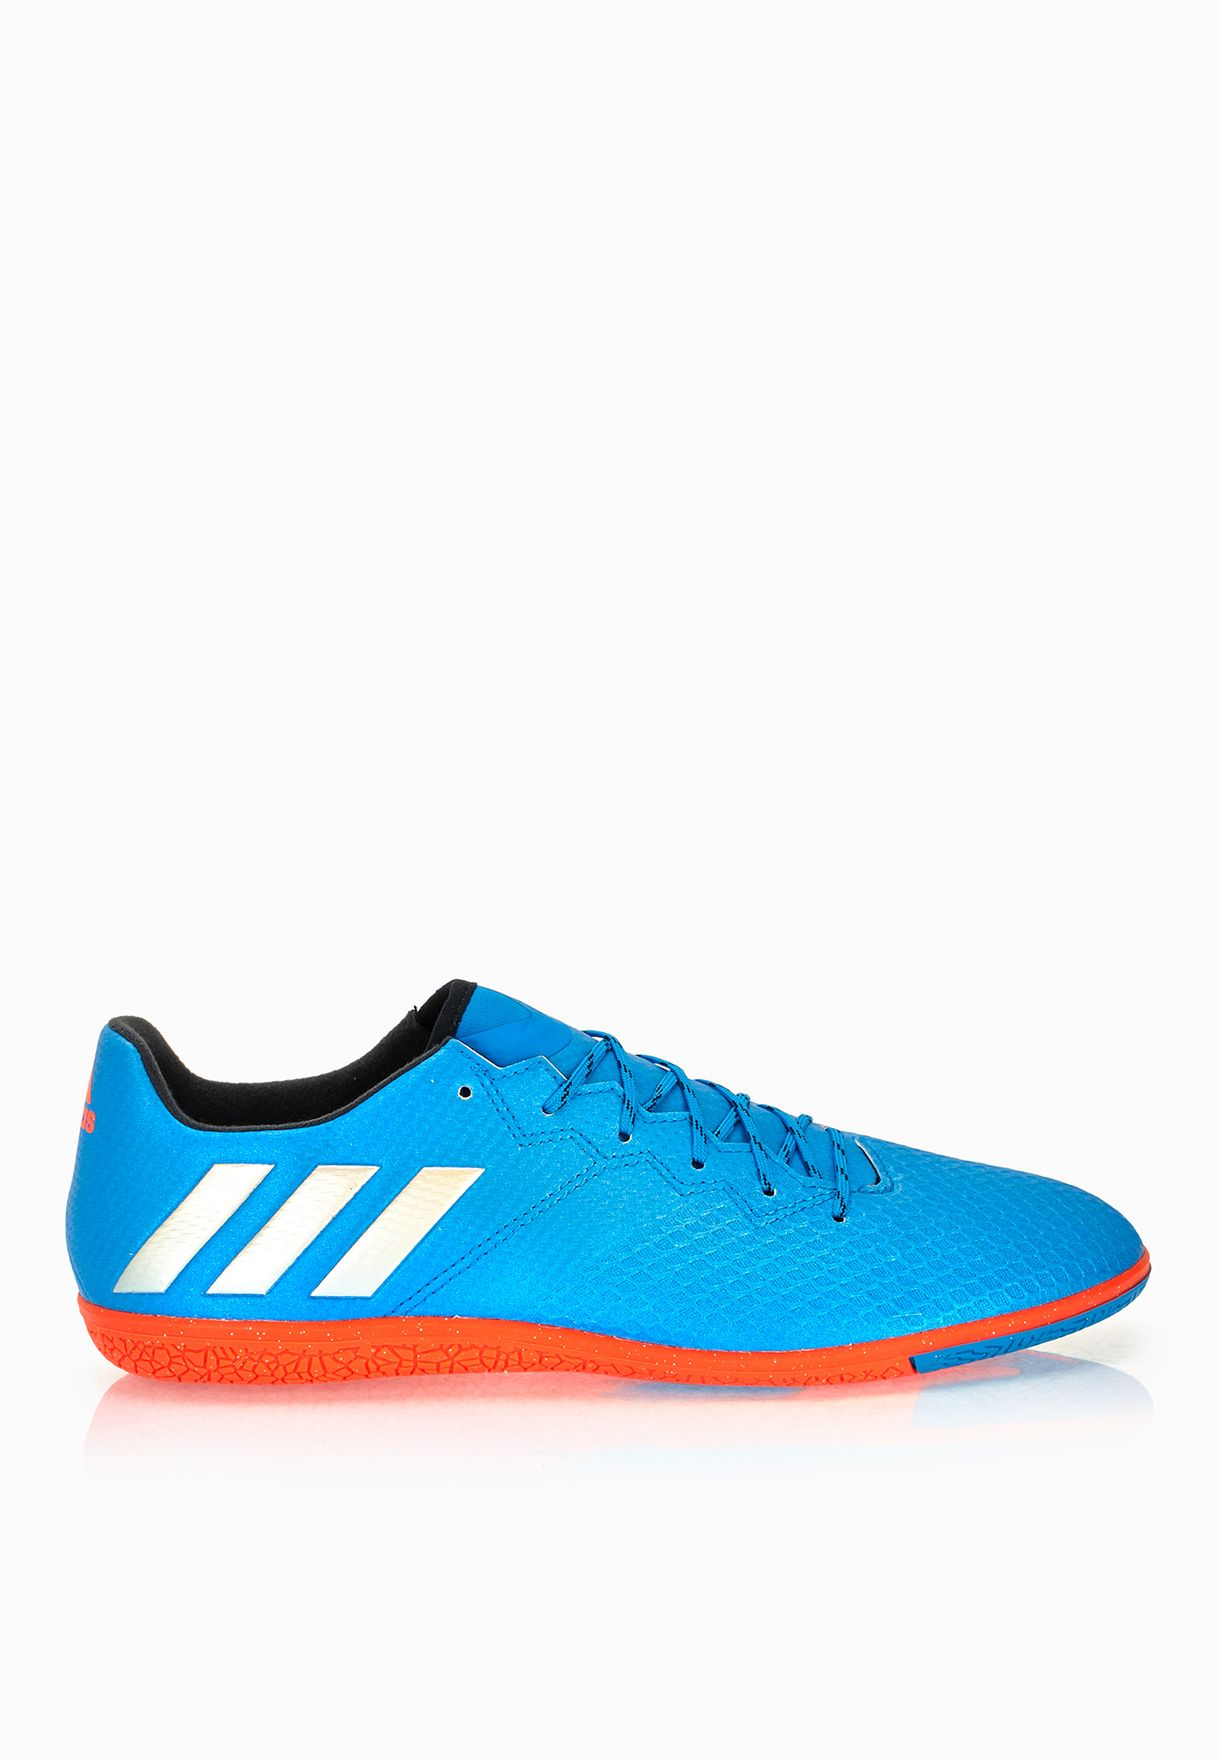 quality design 670b9 3cb20 Shop adidas blue Messi 16.3 IN S79636 for Men in UAE - AD476SH93OOS